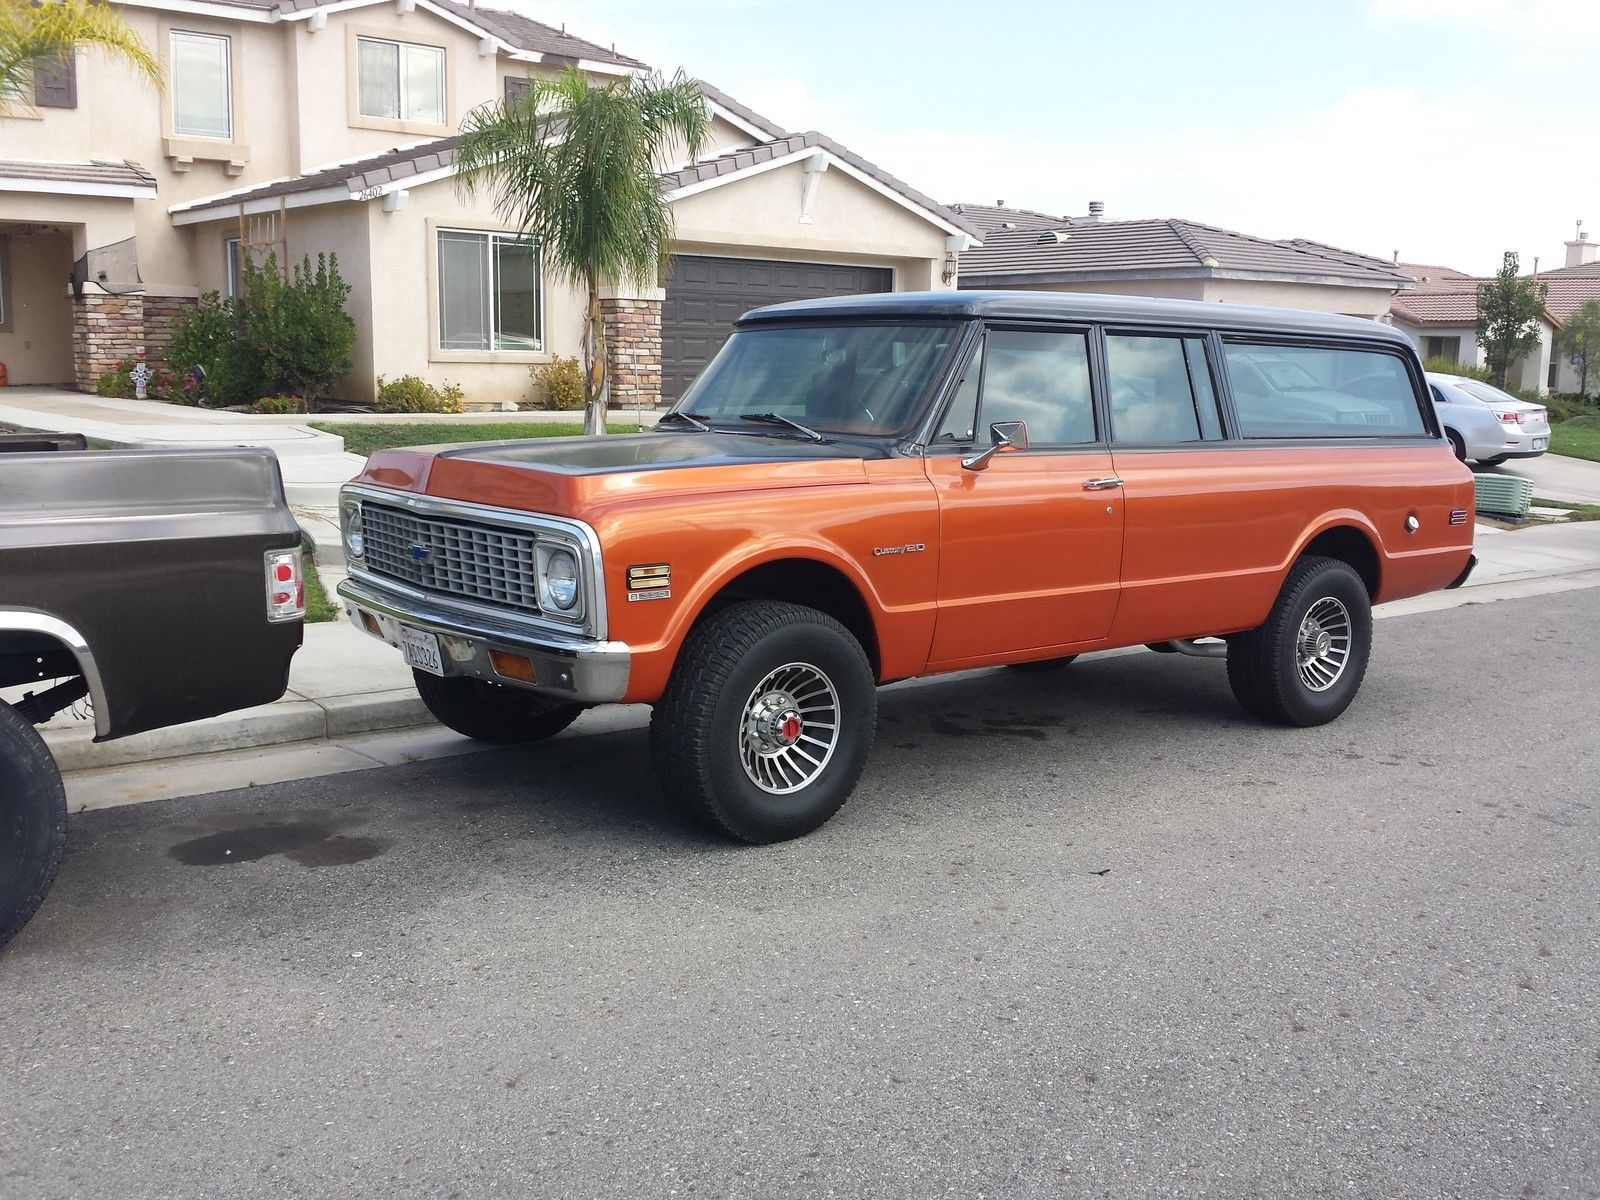 1971 Chevy Suburban 4x4 Automatic 3/4 ton Coolest Suburban Runs great!